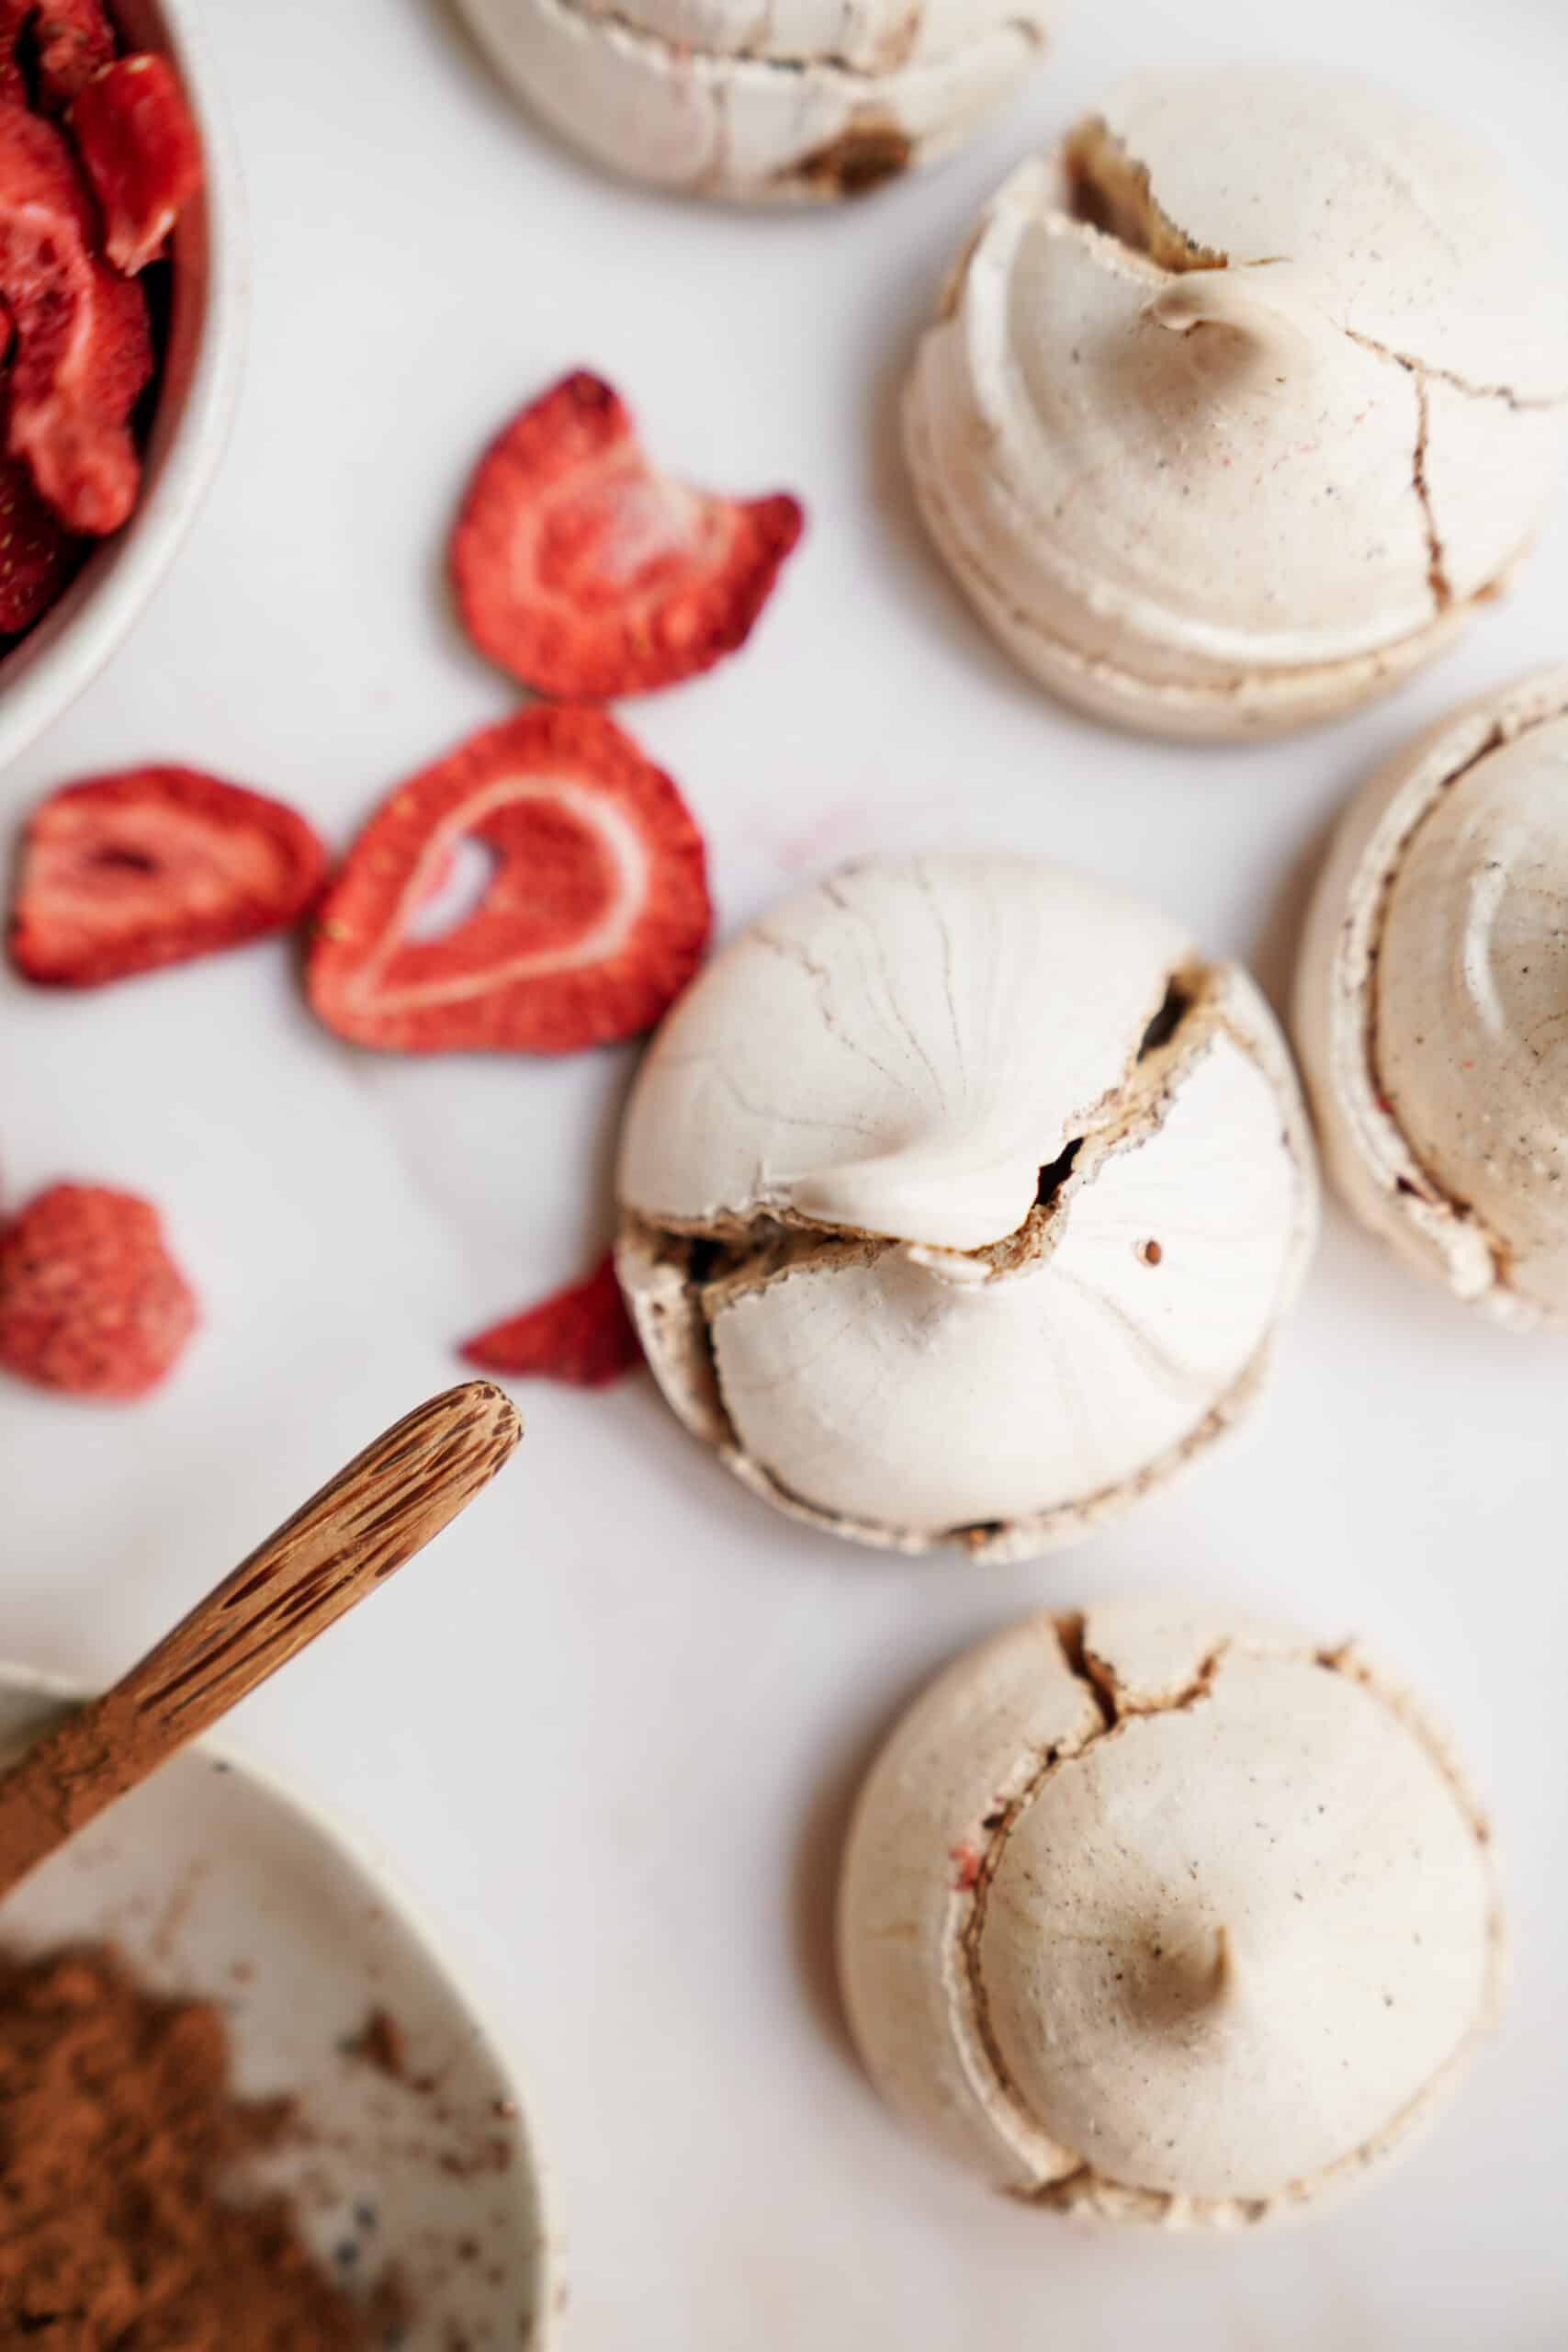 Meringue Cookie Recipe on counter with ingredients